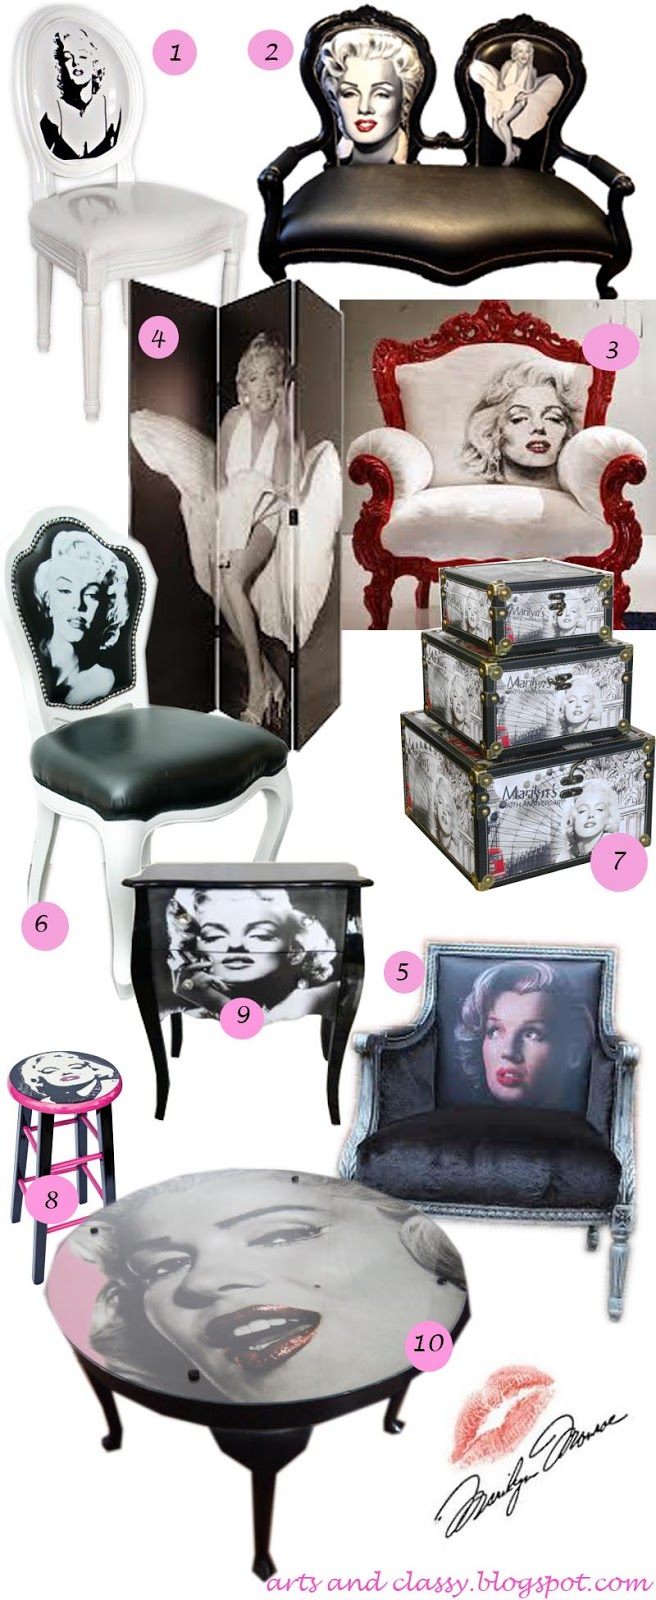 Diy home decor ideas on a budget Marilyn monroe bedroom furniture